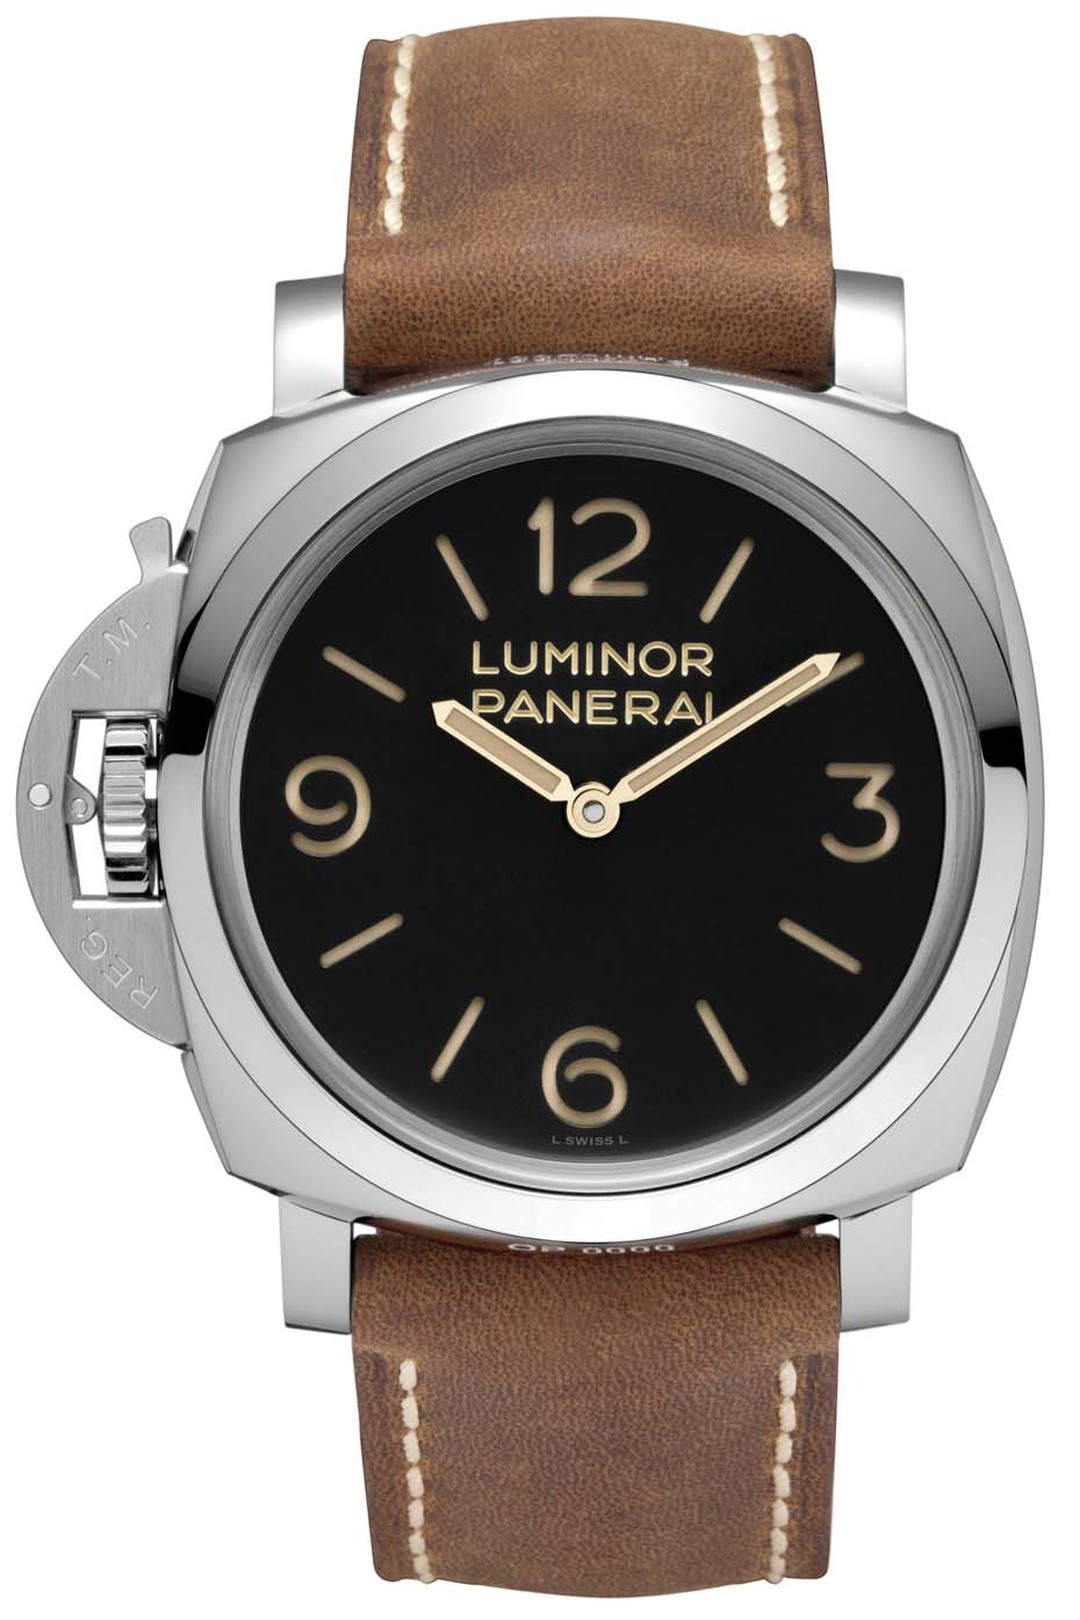 The Panerai Luminor 1950 3 Day-47mm is a special left-handed edition, with the large crown-protecting device at 9 o'clock.